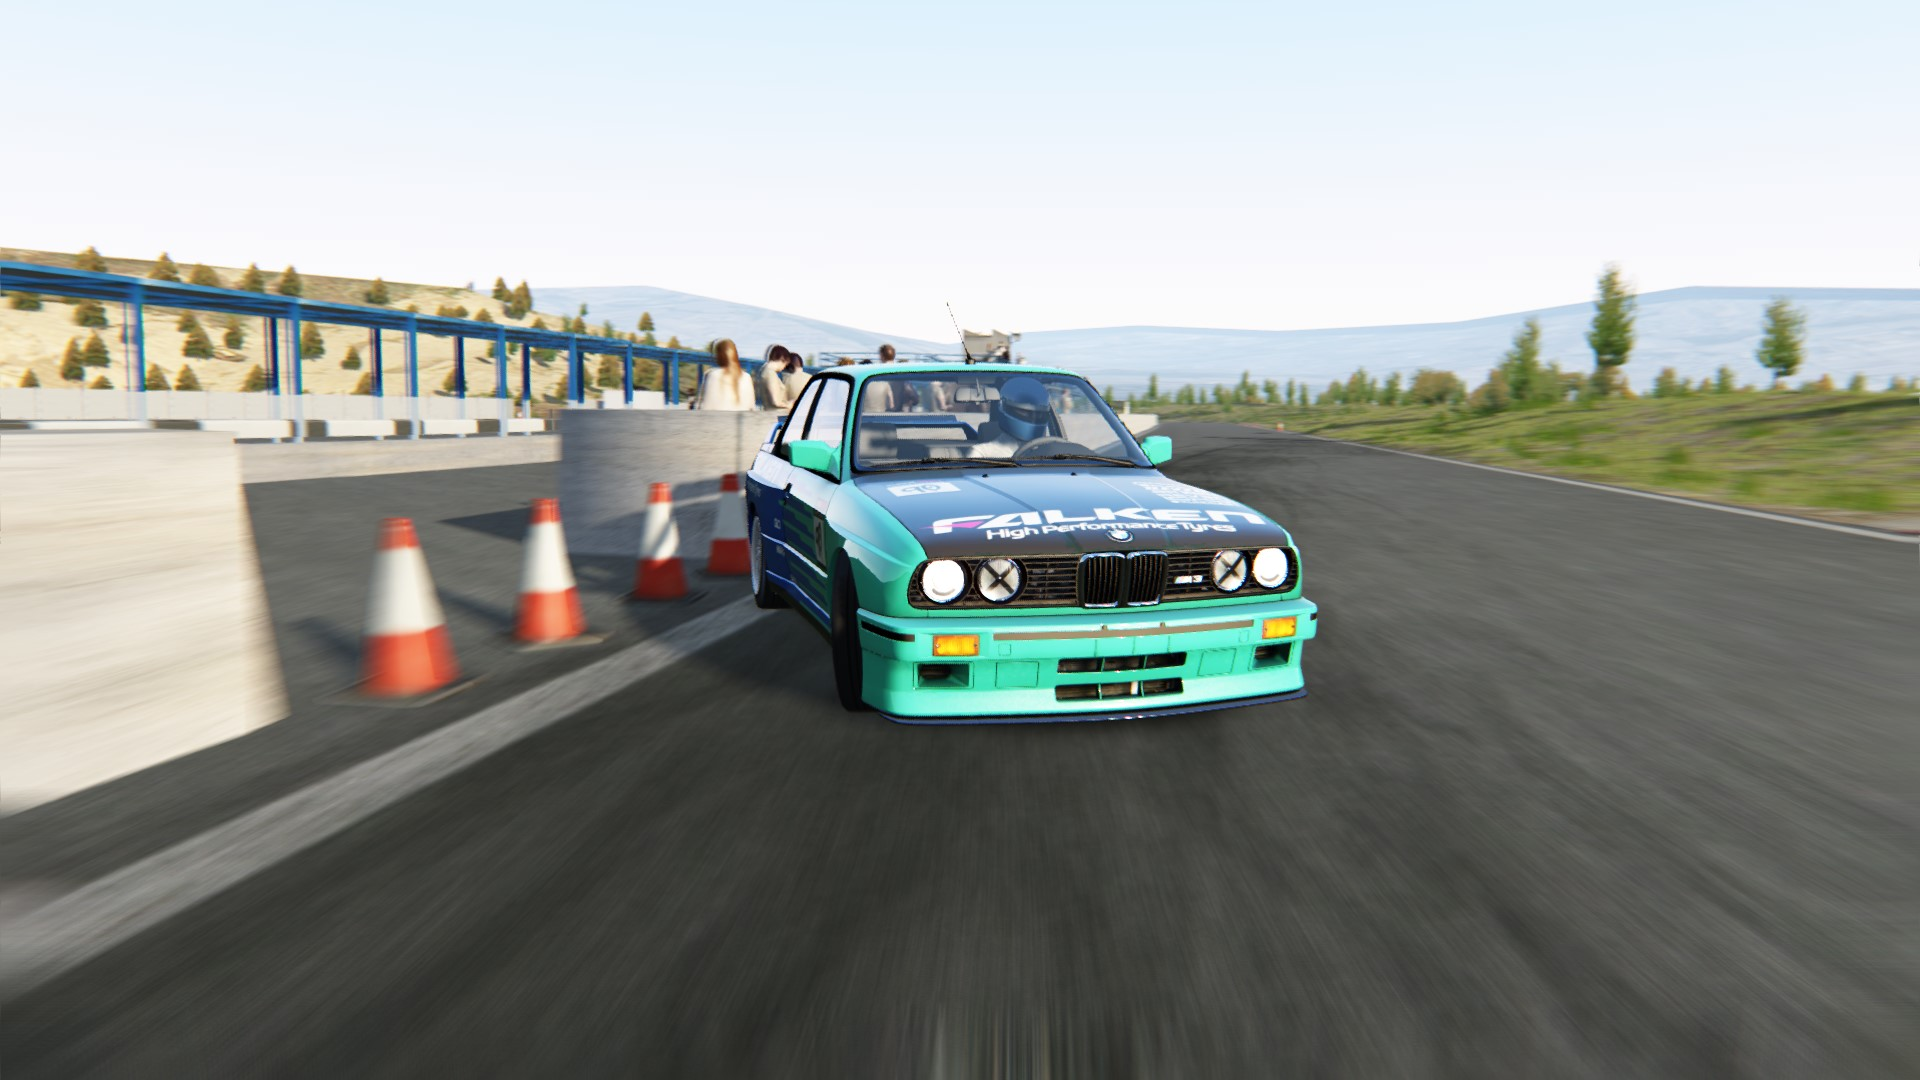 Screenshot_bmw_m3_e30_drift_suzukatwindrift_7-4-116-23-56-3.jpg